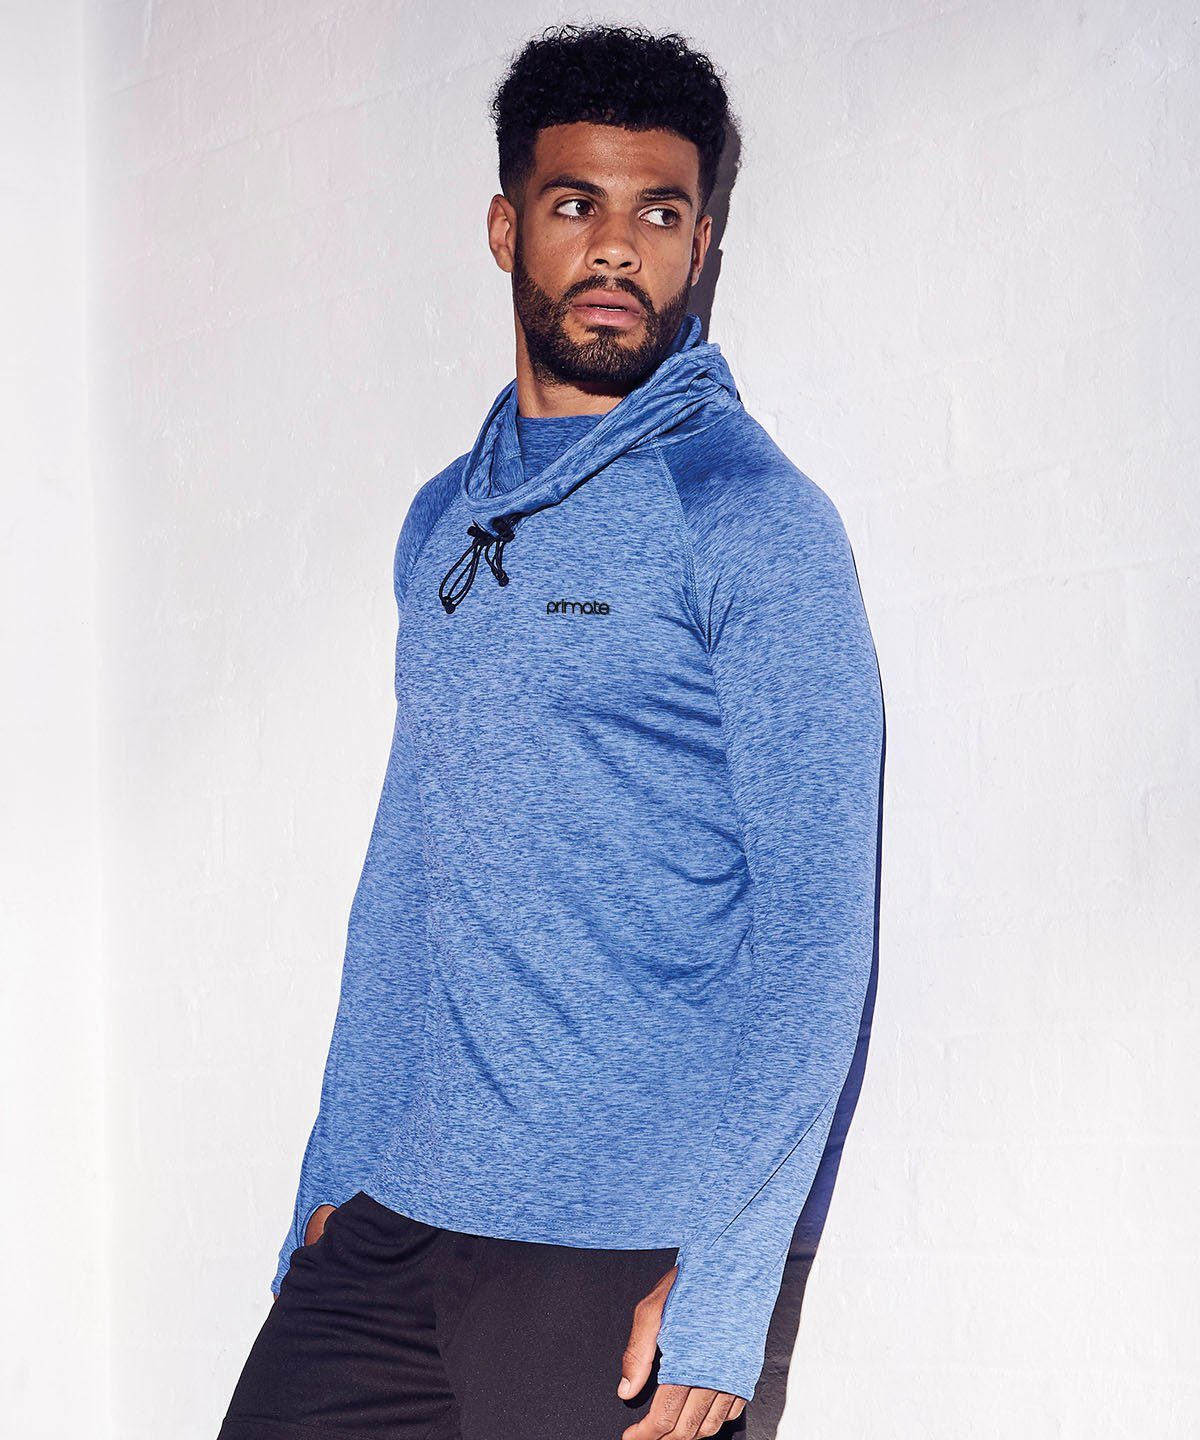 Men's Performance Cowl Neck Hoodie Primate Activewear